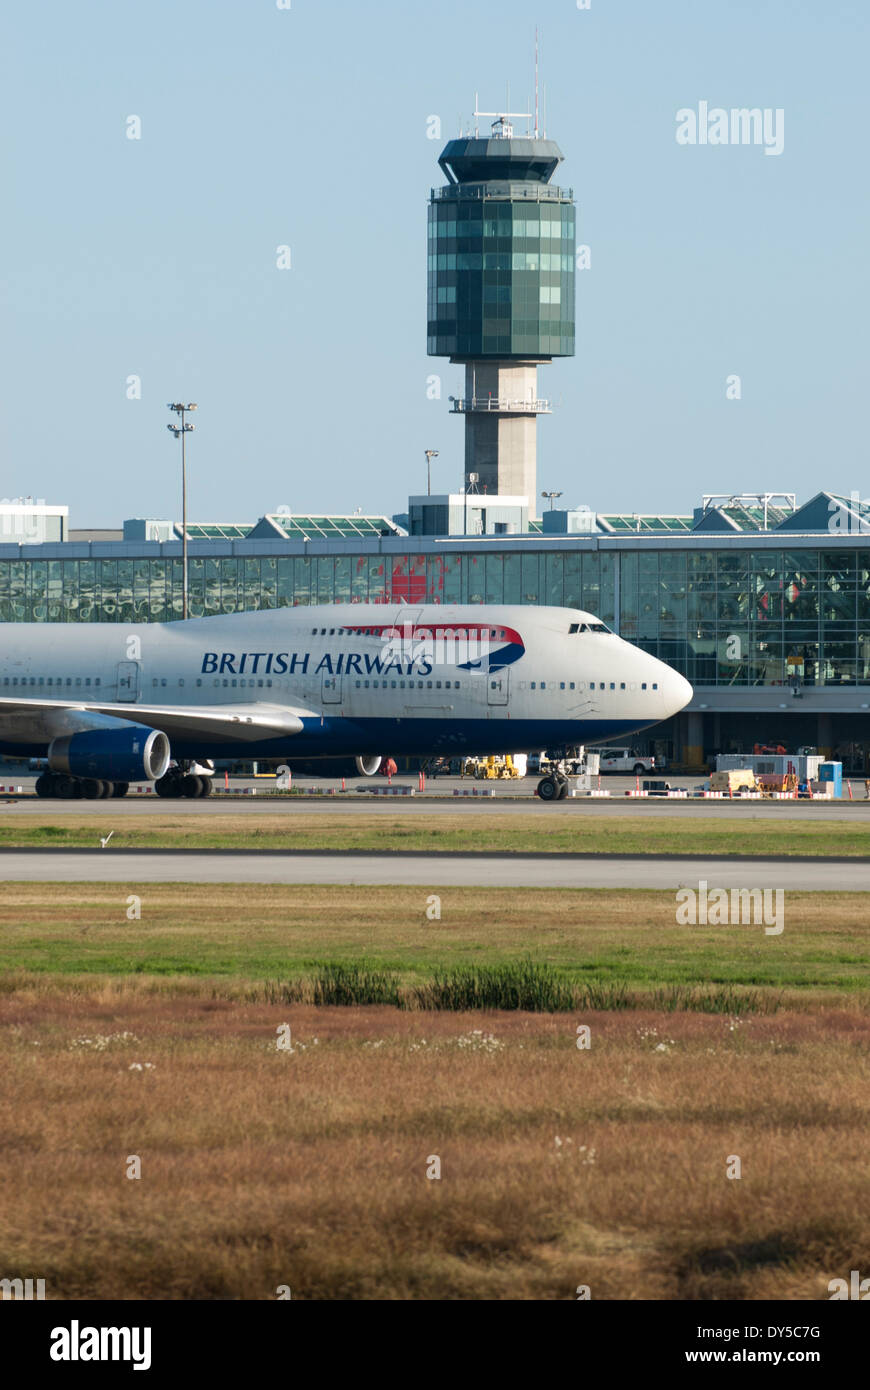 British Airways commercial jet taxiing at Vancouver International Airport. - Stock Image